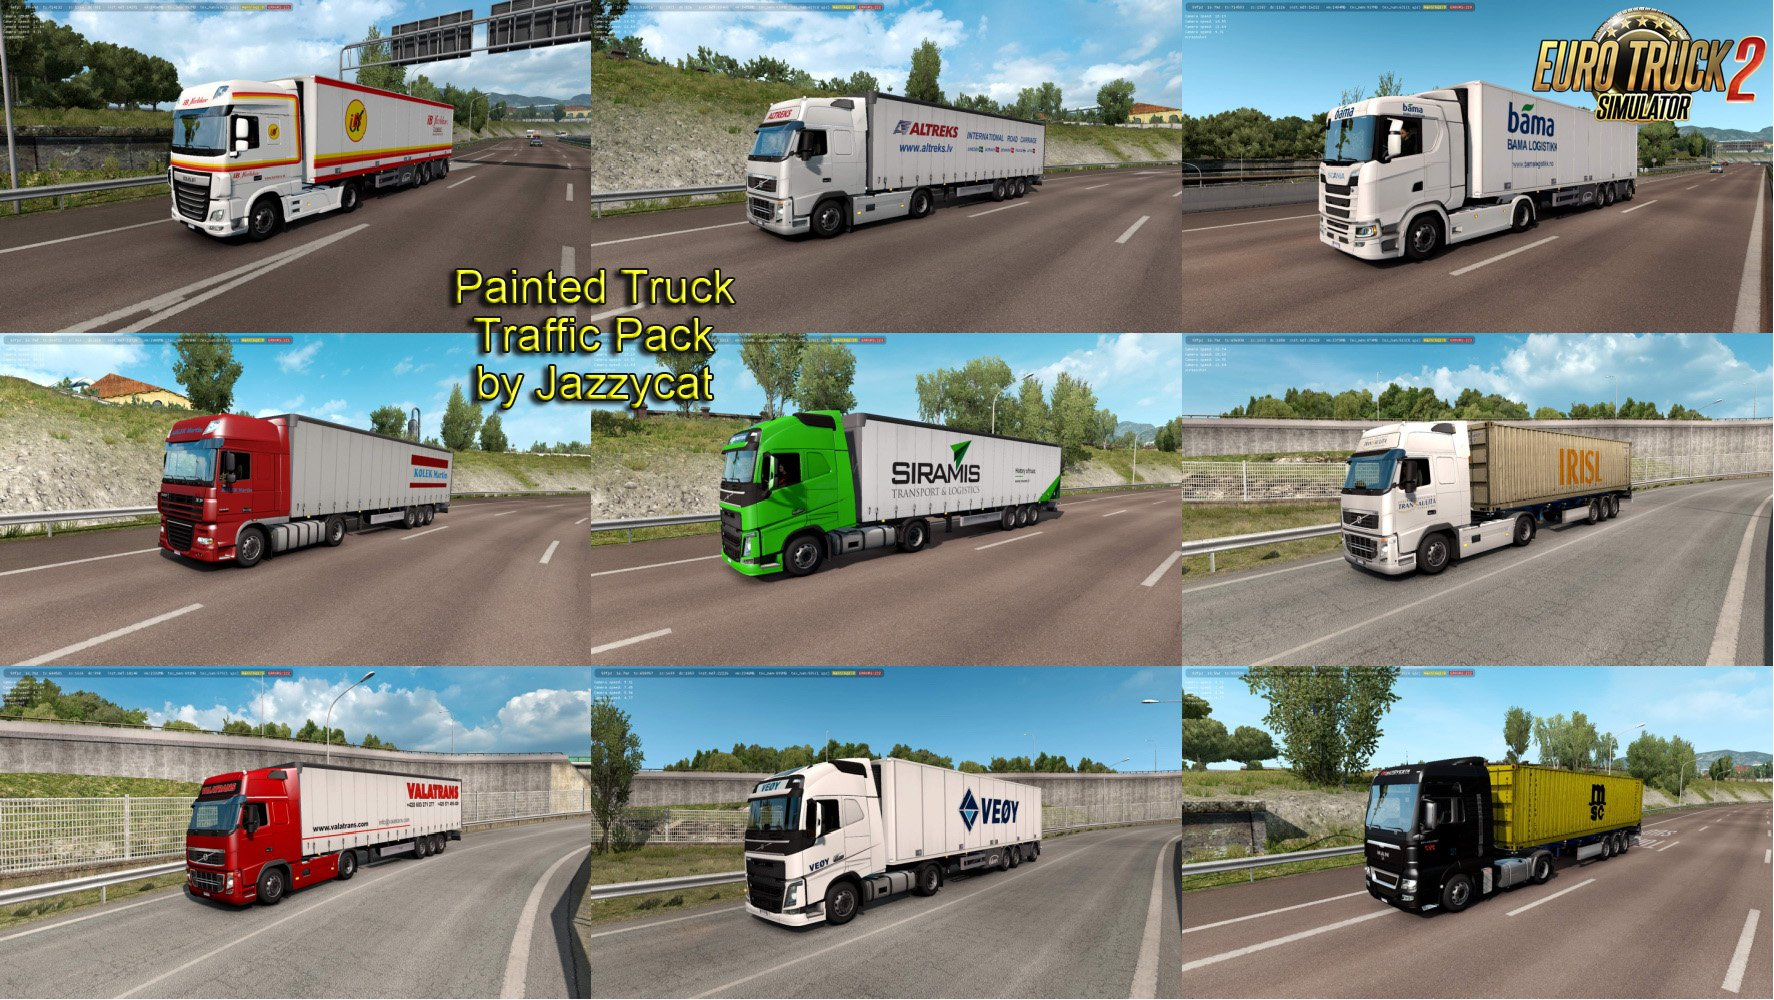 Painted Truck Traffic Pack v6.7 by Jazzycat